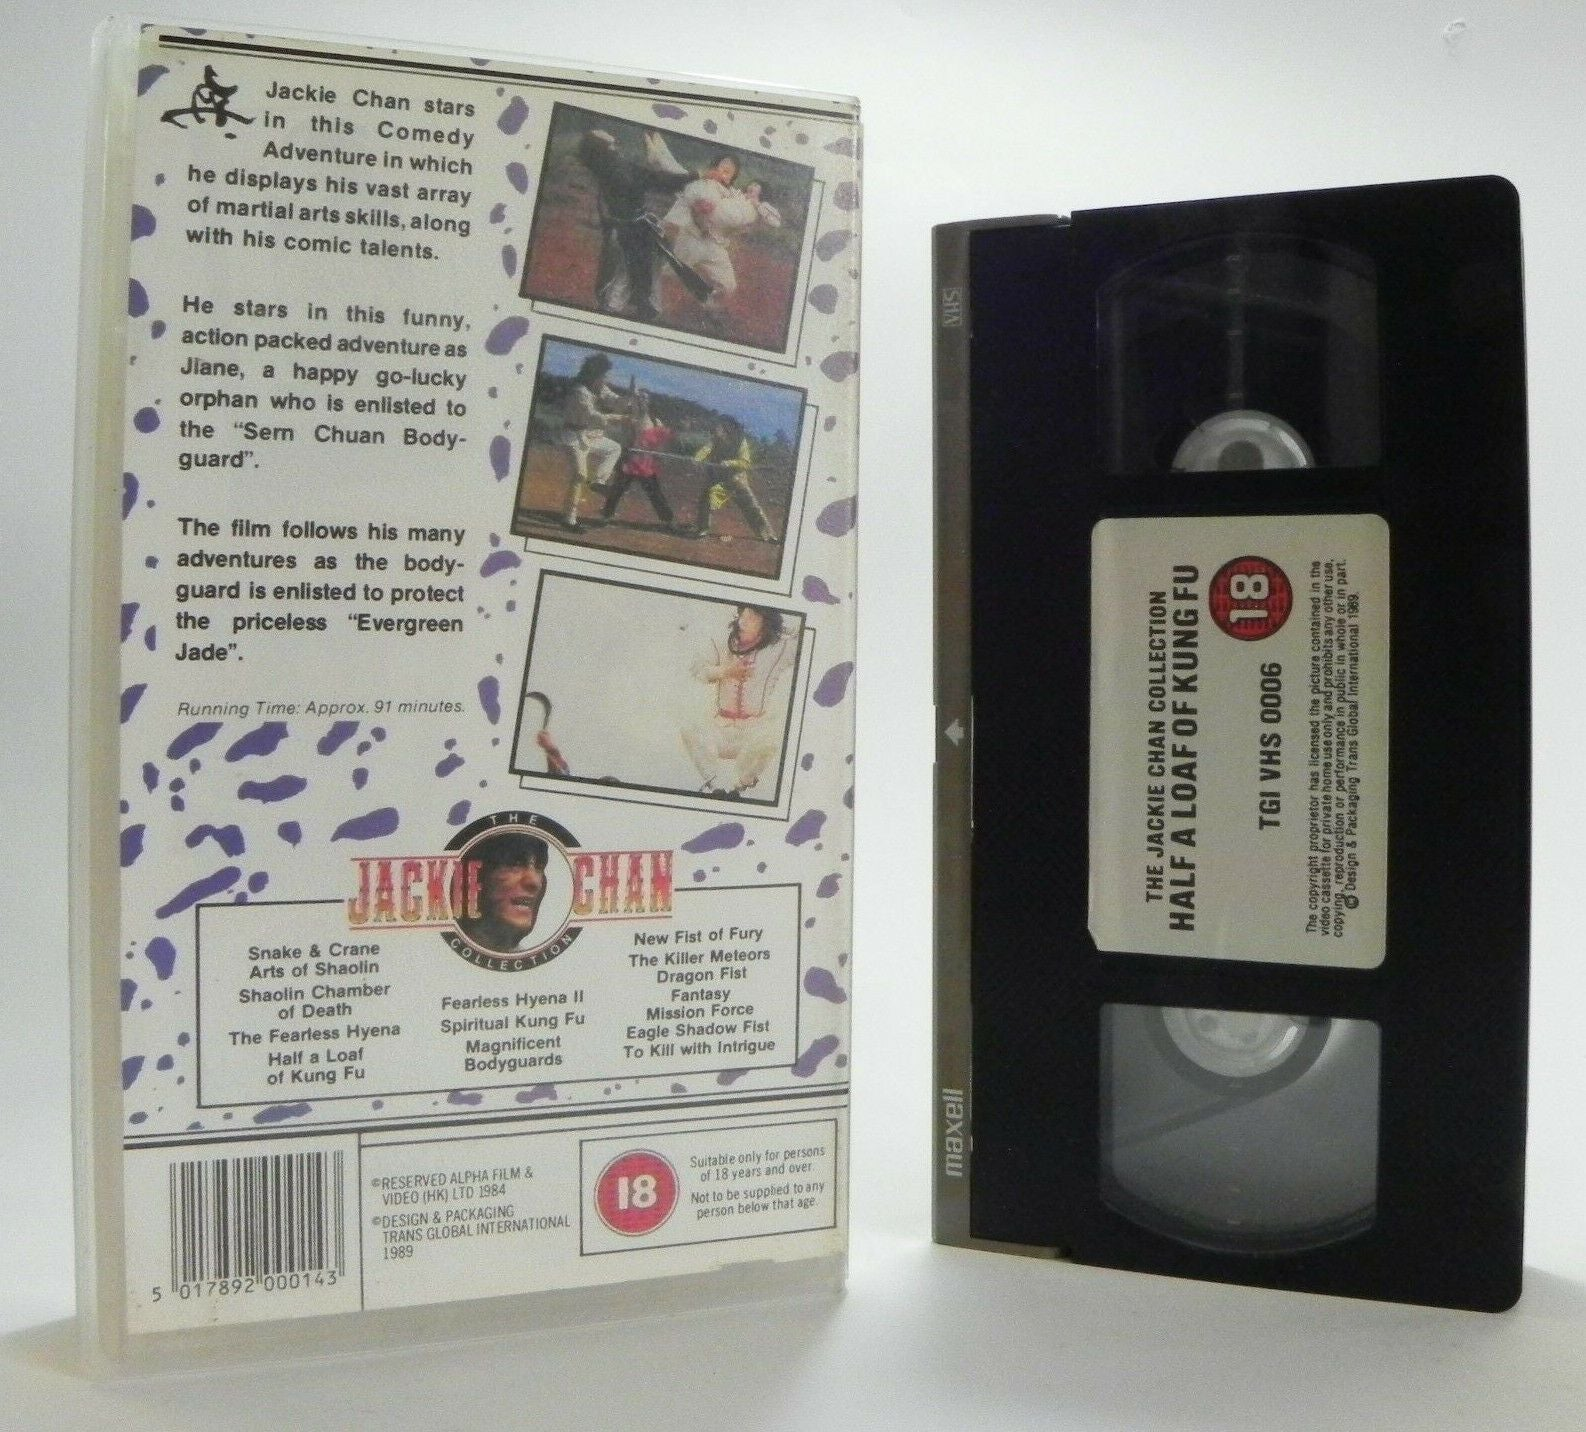 Half A Loaf Of Kung Fu: Jackie Chan Collection - Martial Arts (1978) - Pal VHS